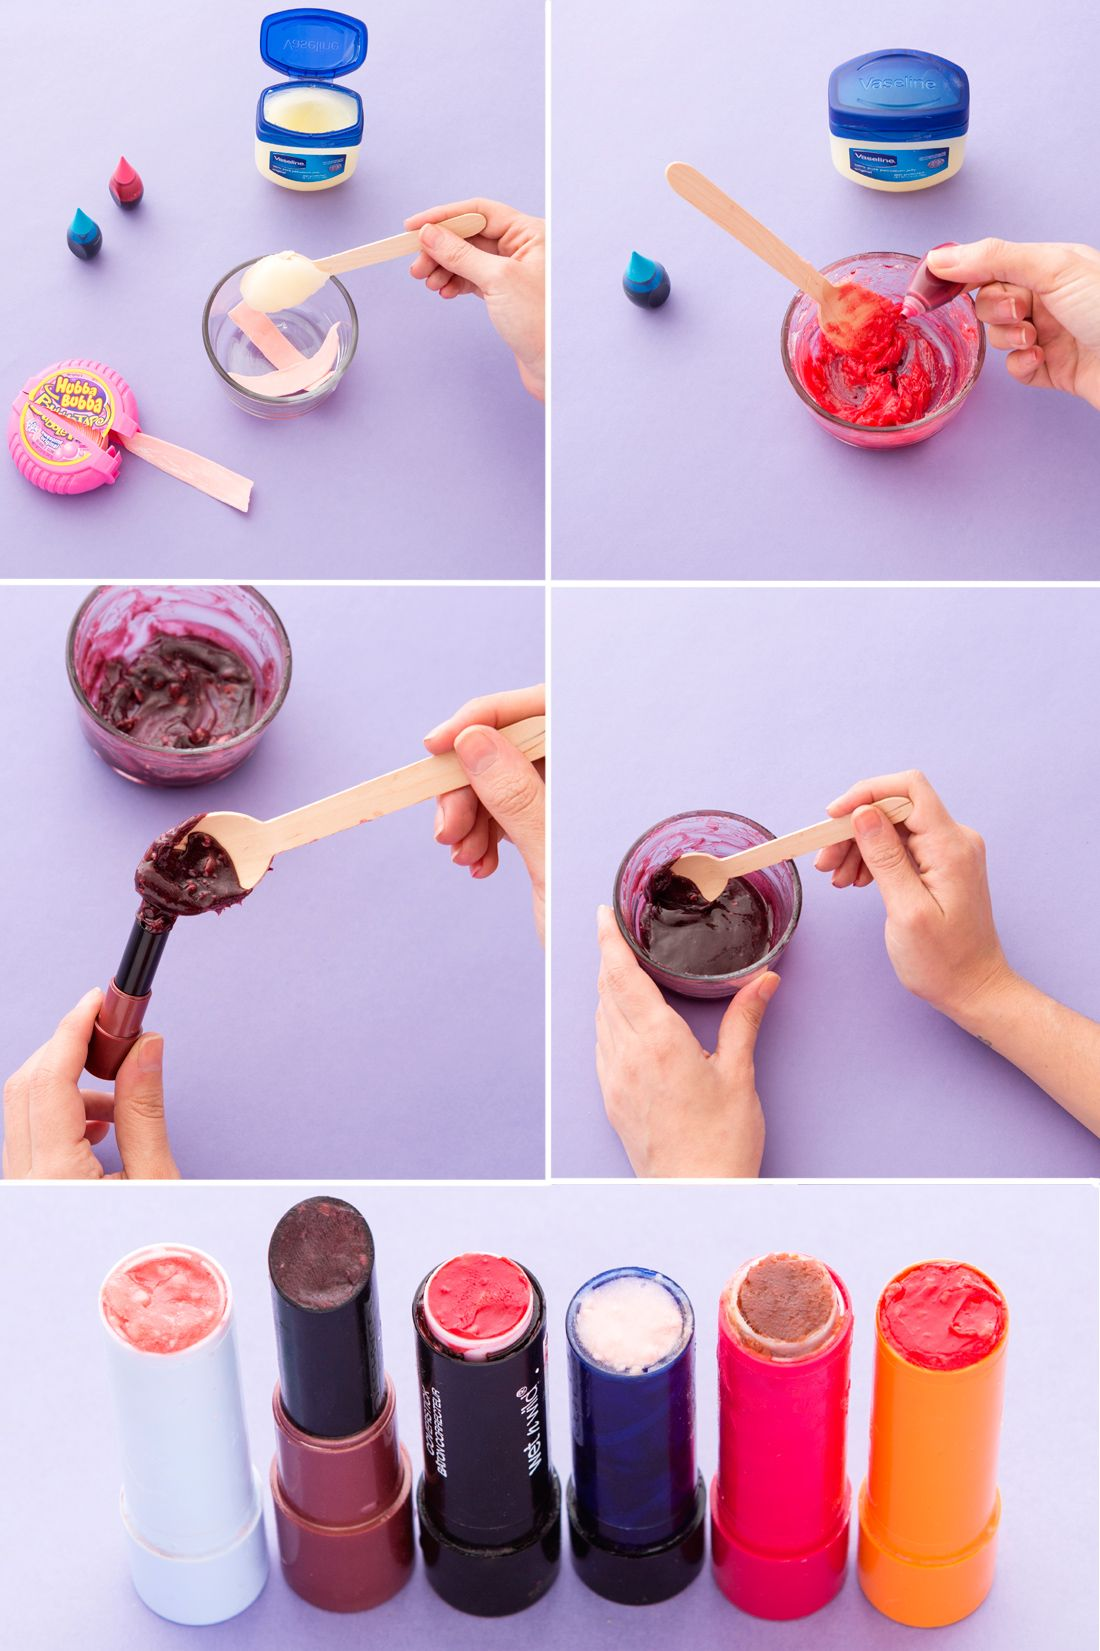 I Made Lipstick Out Of Bubblegum And This Is What Happened Diy Lipstick How To Make Lipstick Diy Lip Gloss